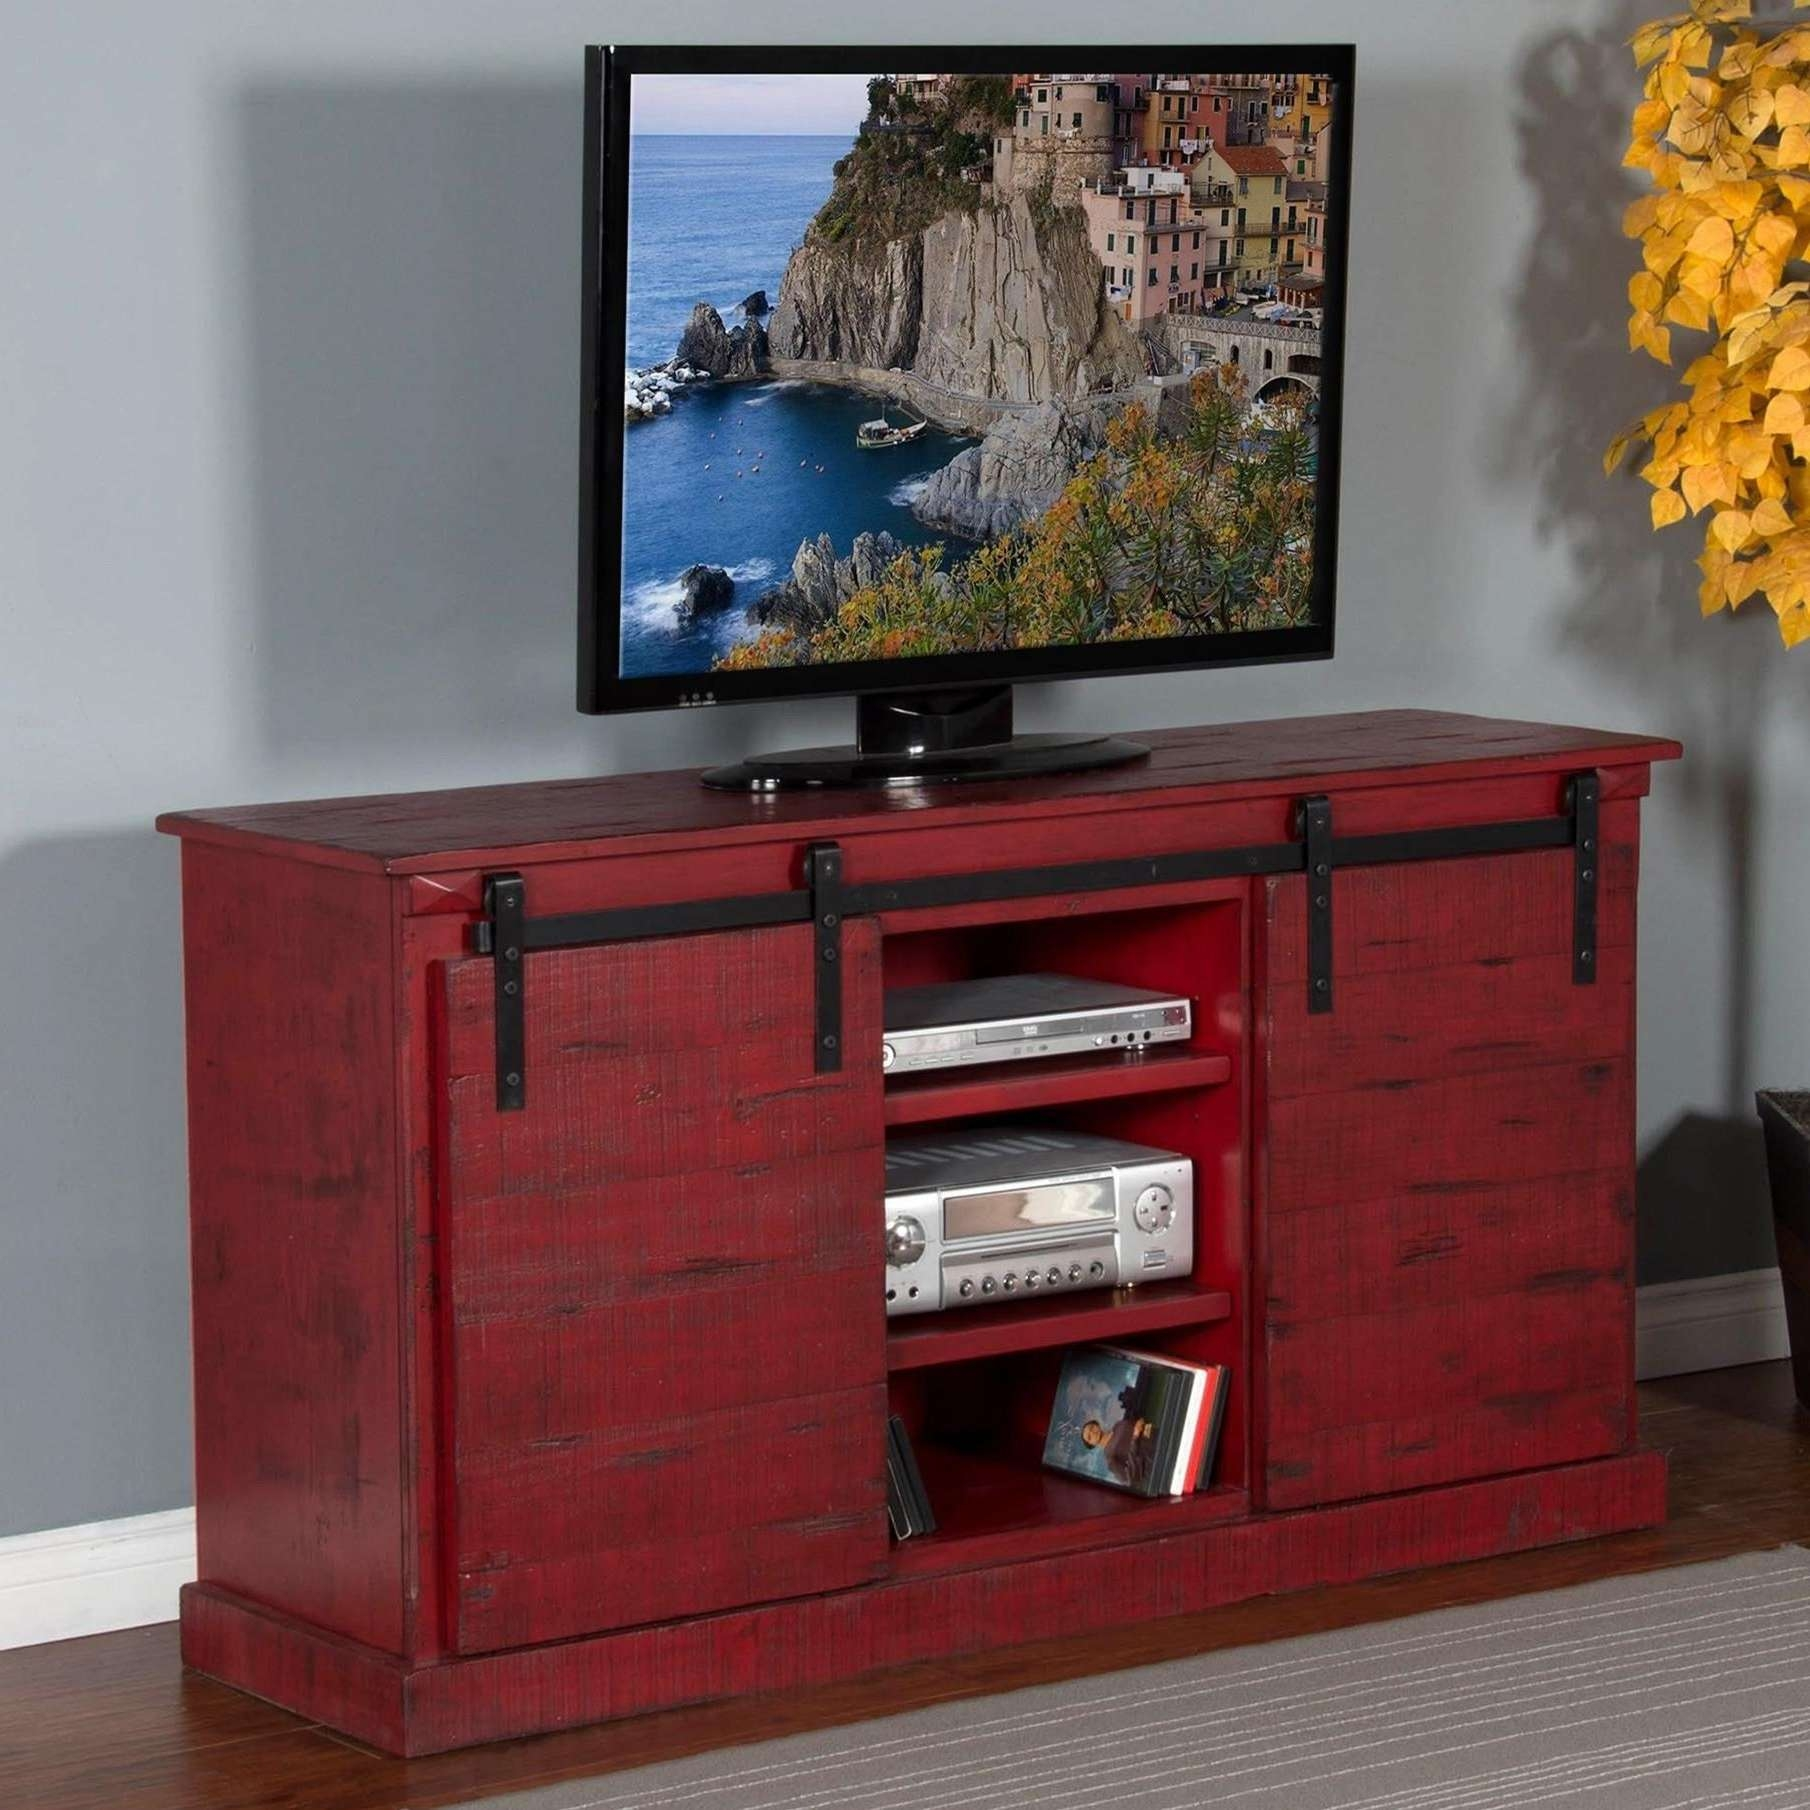 Shop Tv Stands | Wolf And Gardiner Wolf Furniture Intended For Rustic Red Tv Stands (View 9 of 20)